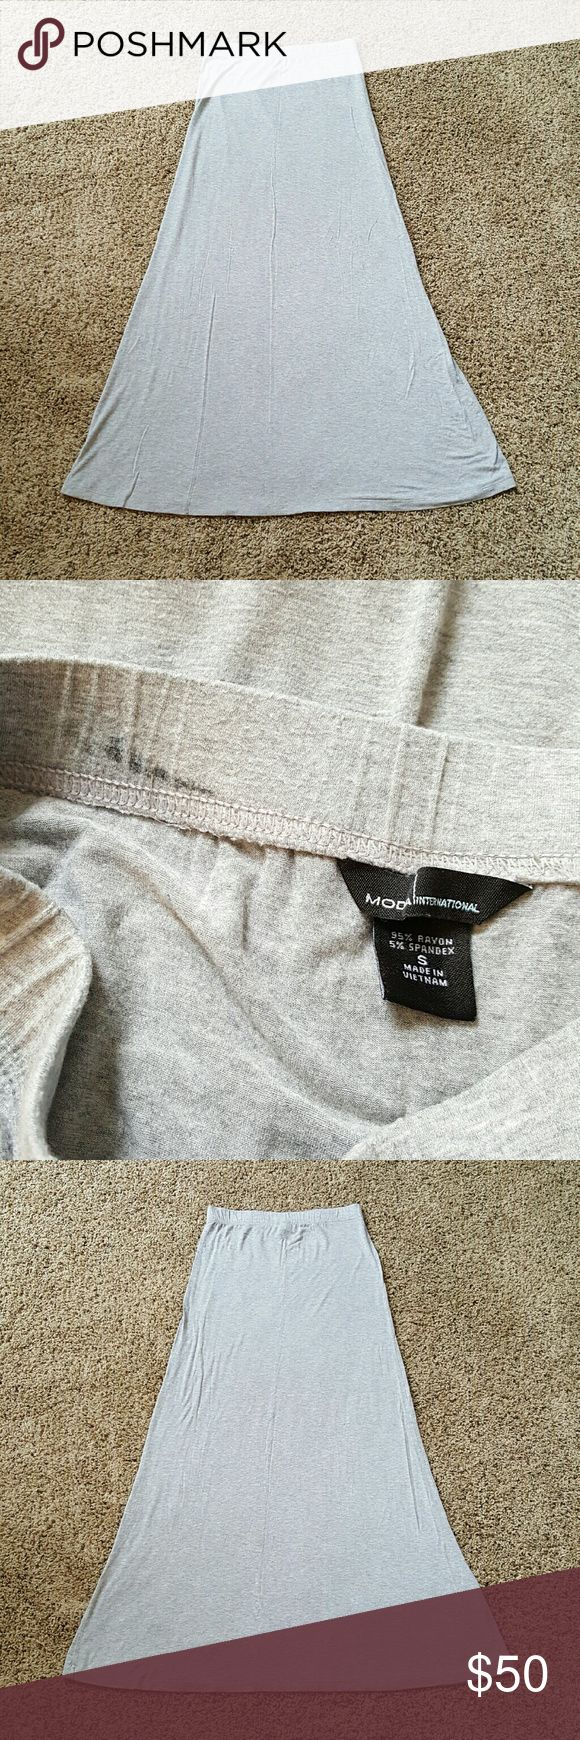 "⚀ SUPER SALE! VS Maxi Skirt Light Gray In excellent condition!  Second pic shows a dark gray mark inside band, does not show through, I believe its from their dye process.  Bought through Victoria's Secret Website, tag says Moda Internarional.  Super soft and stretchy maxi skirt.  Color is a washed light gray, silver.  Laying flat and unstretched waist measures about 13&1/2"", length is about 40"".  I love these but am thinking about switching to dresses.  Offers/negotiation is welcome…"